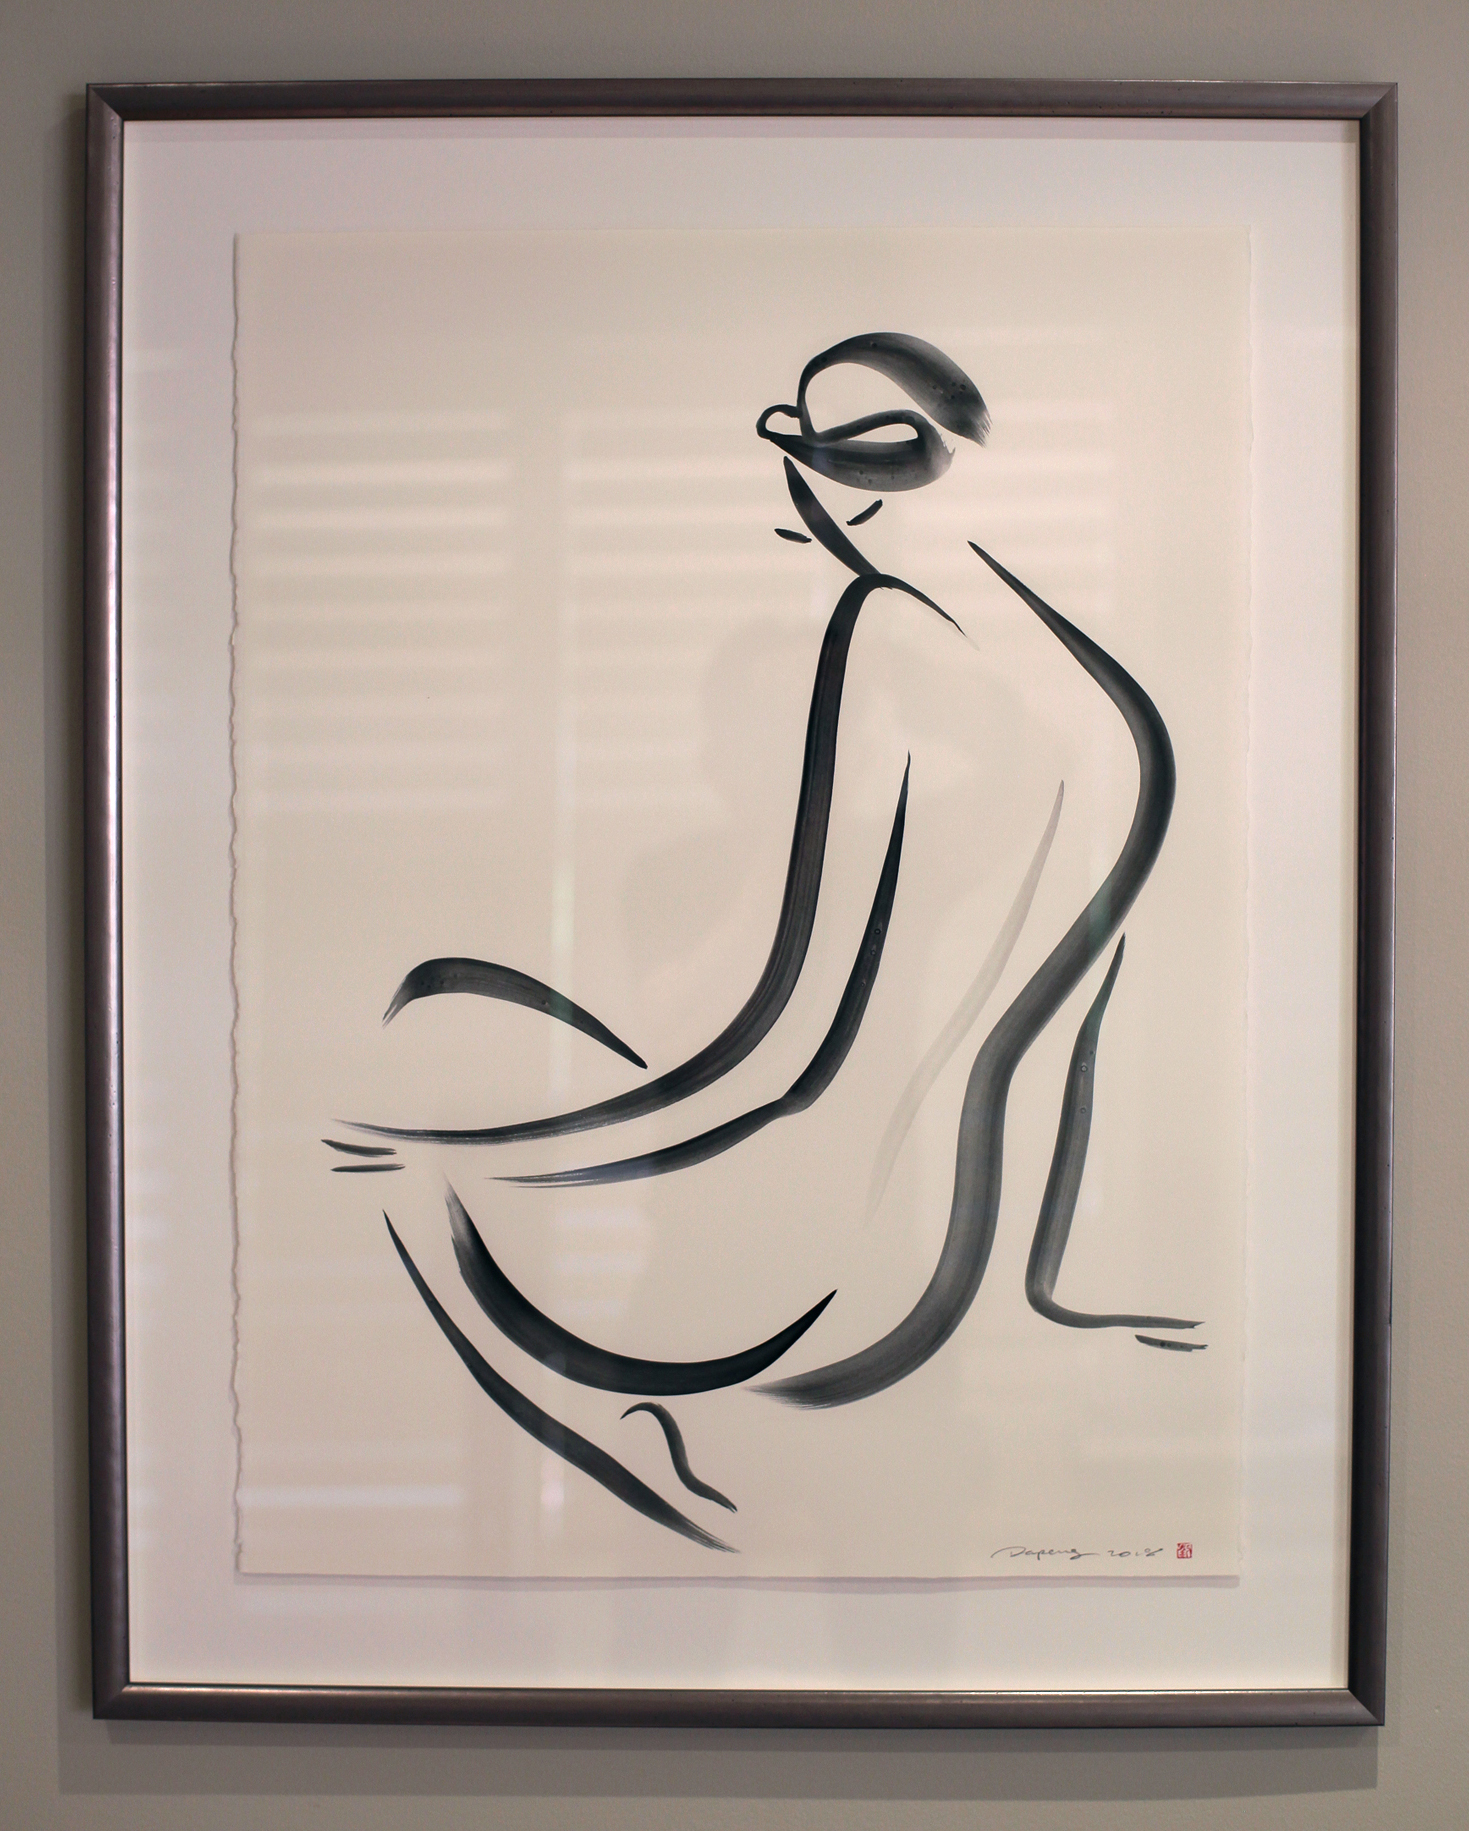 Untitled Nude Series, Gouache on Paper, 56x76cm, 2018